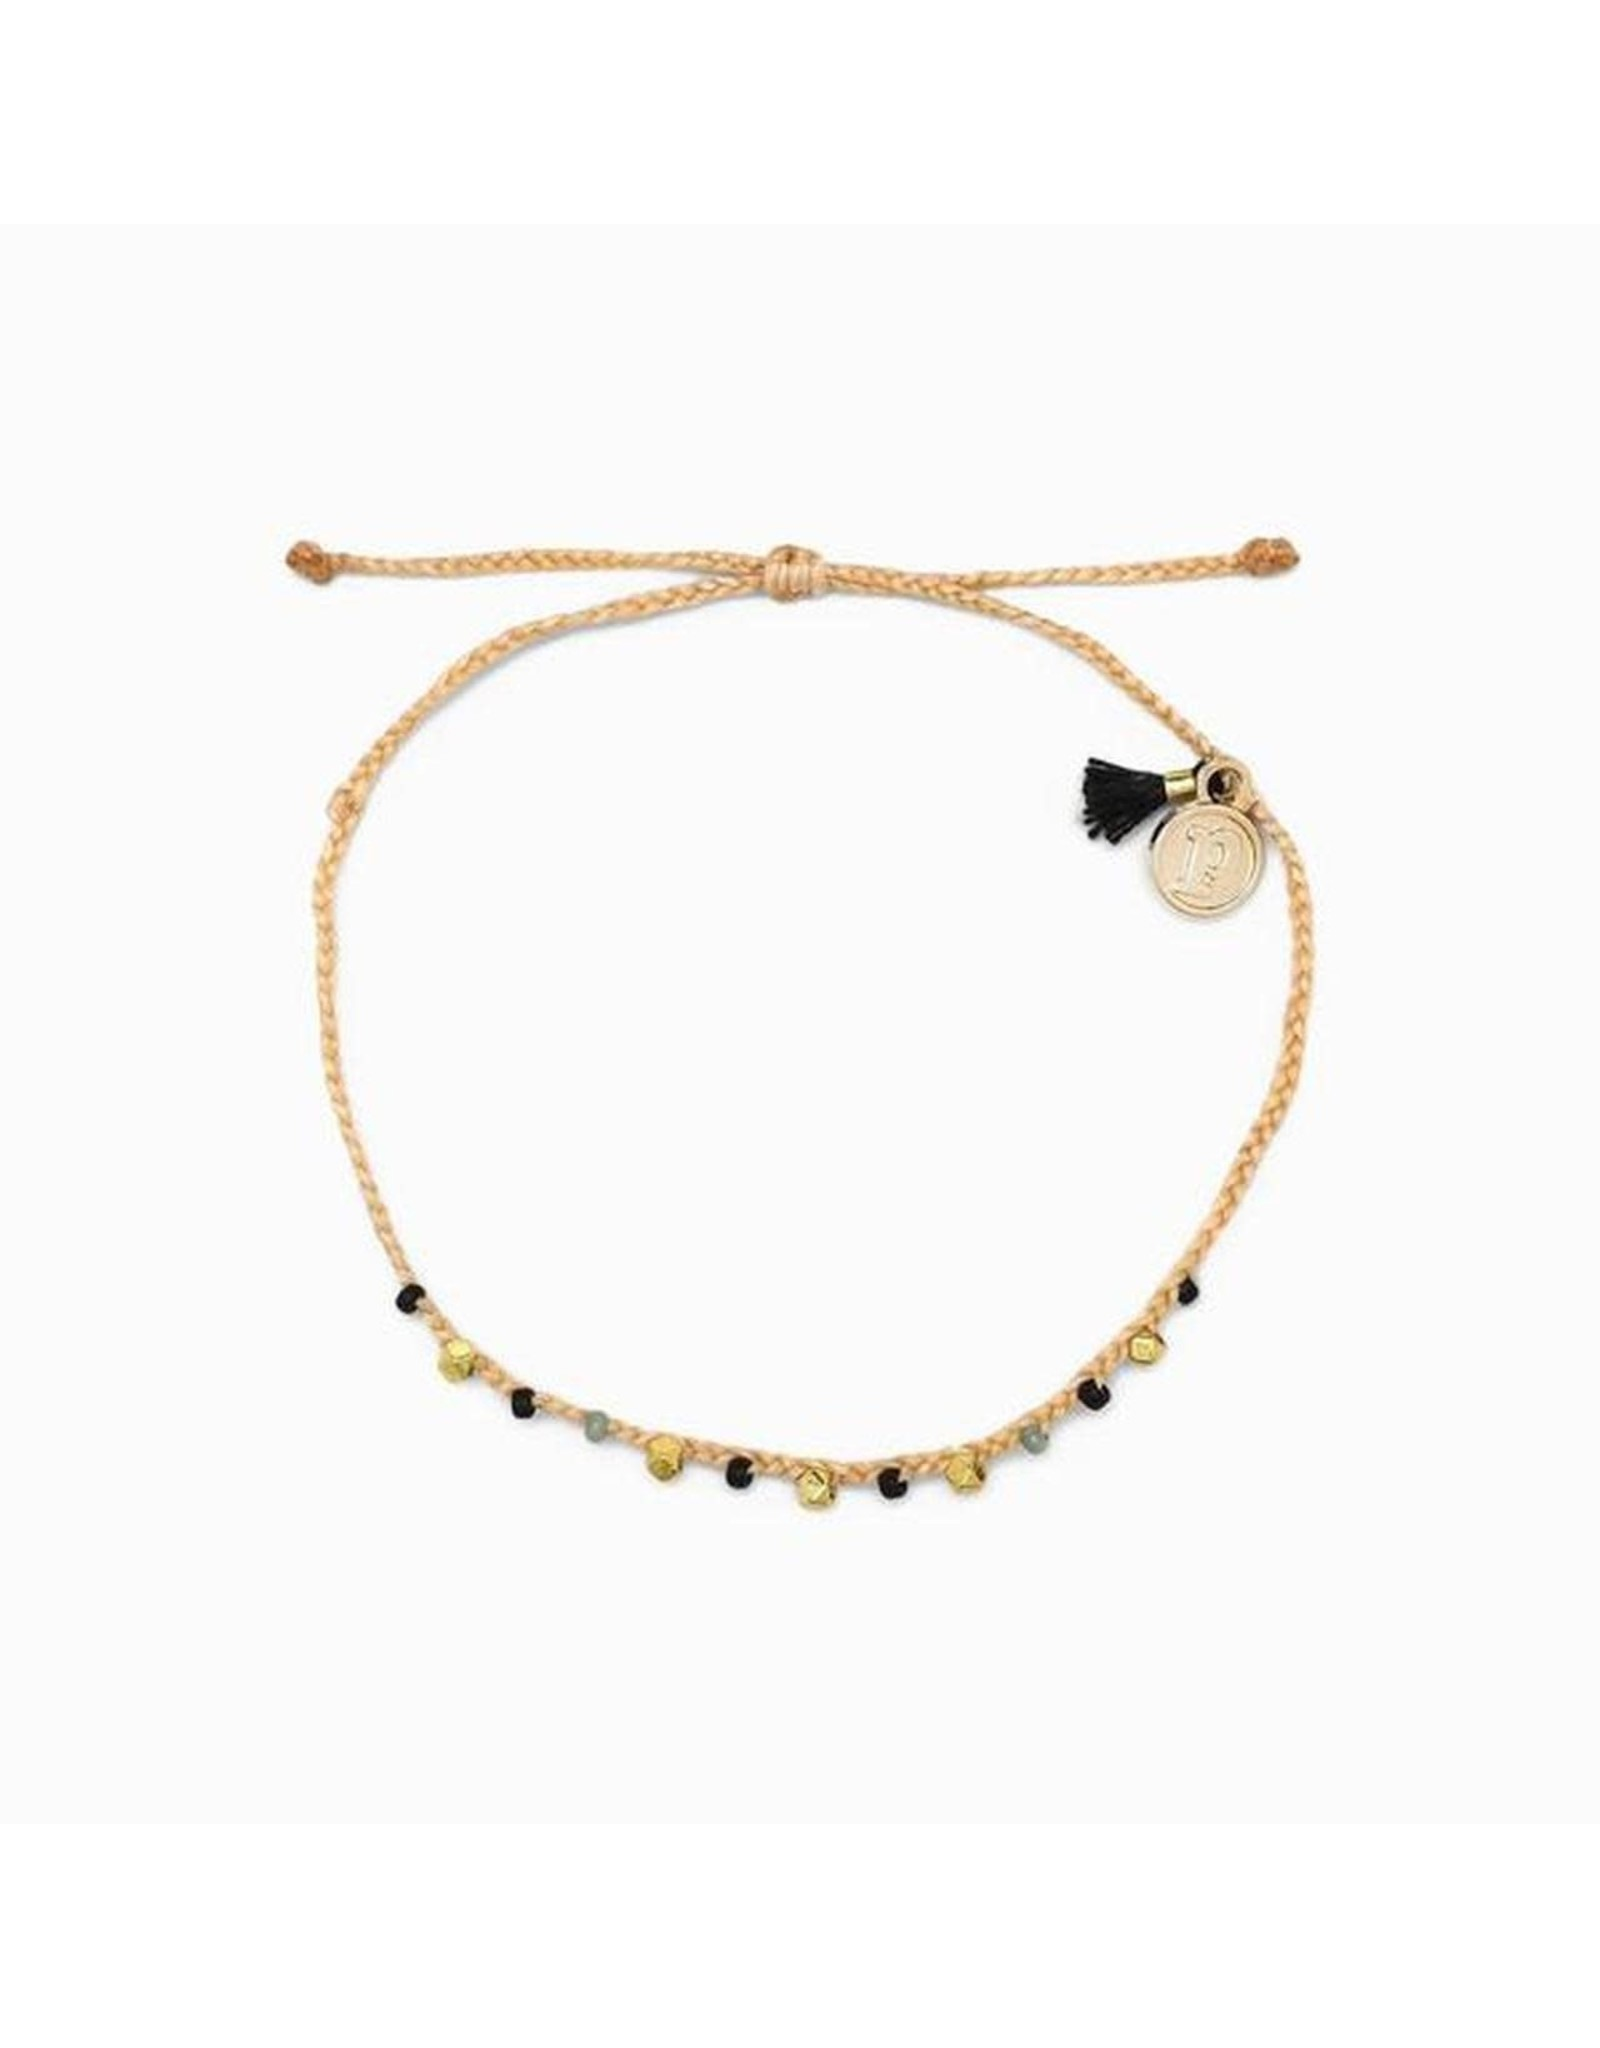 GOLD BEAD and BRAID Bracelet, BEIGE